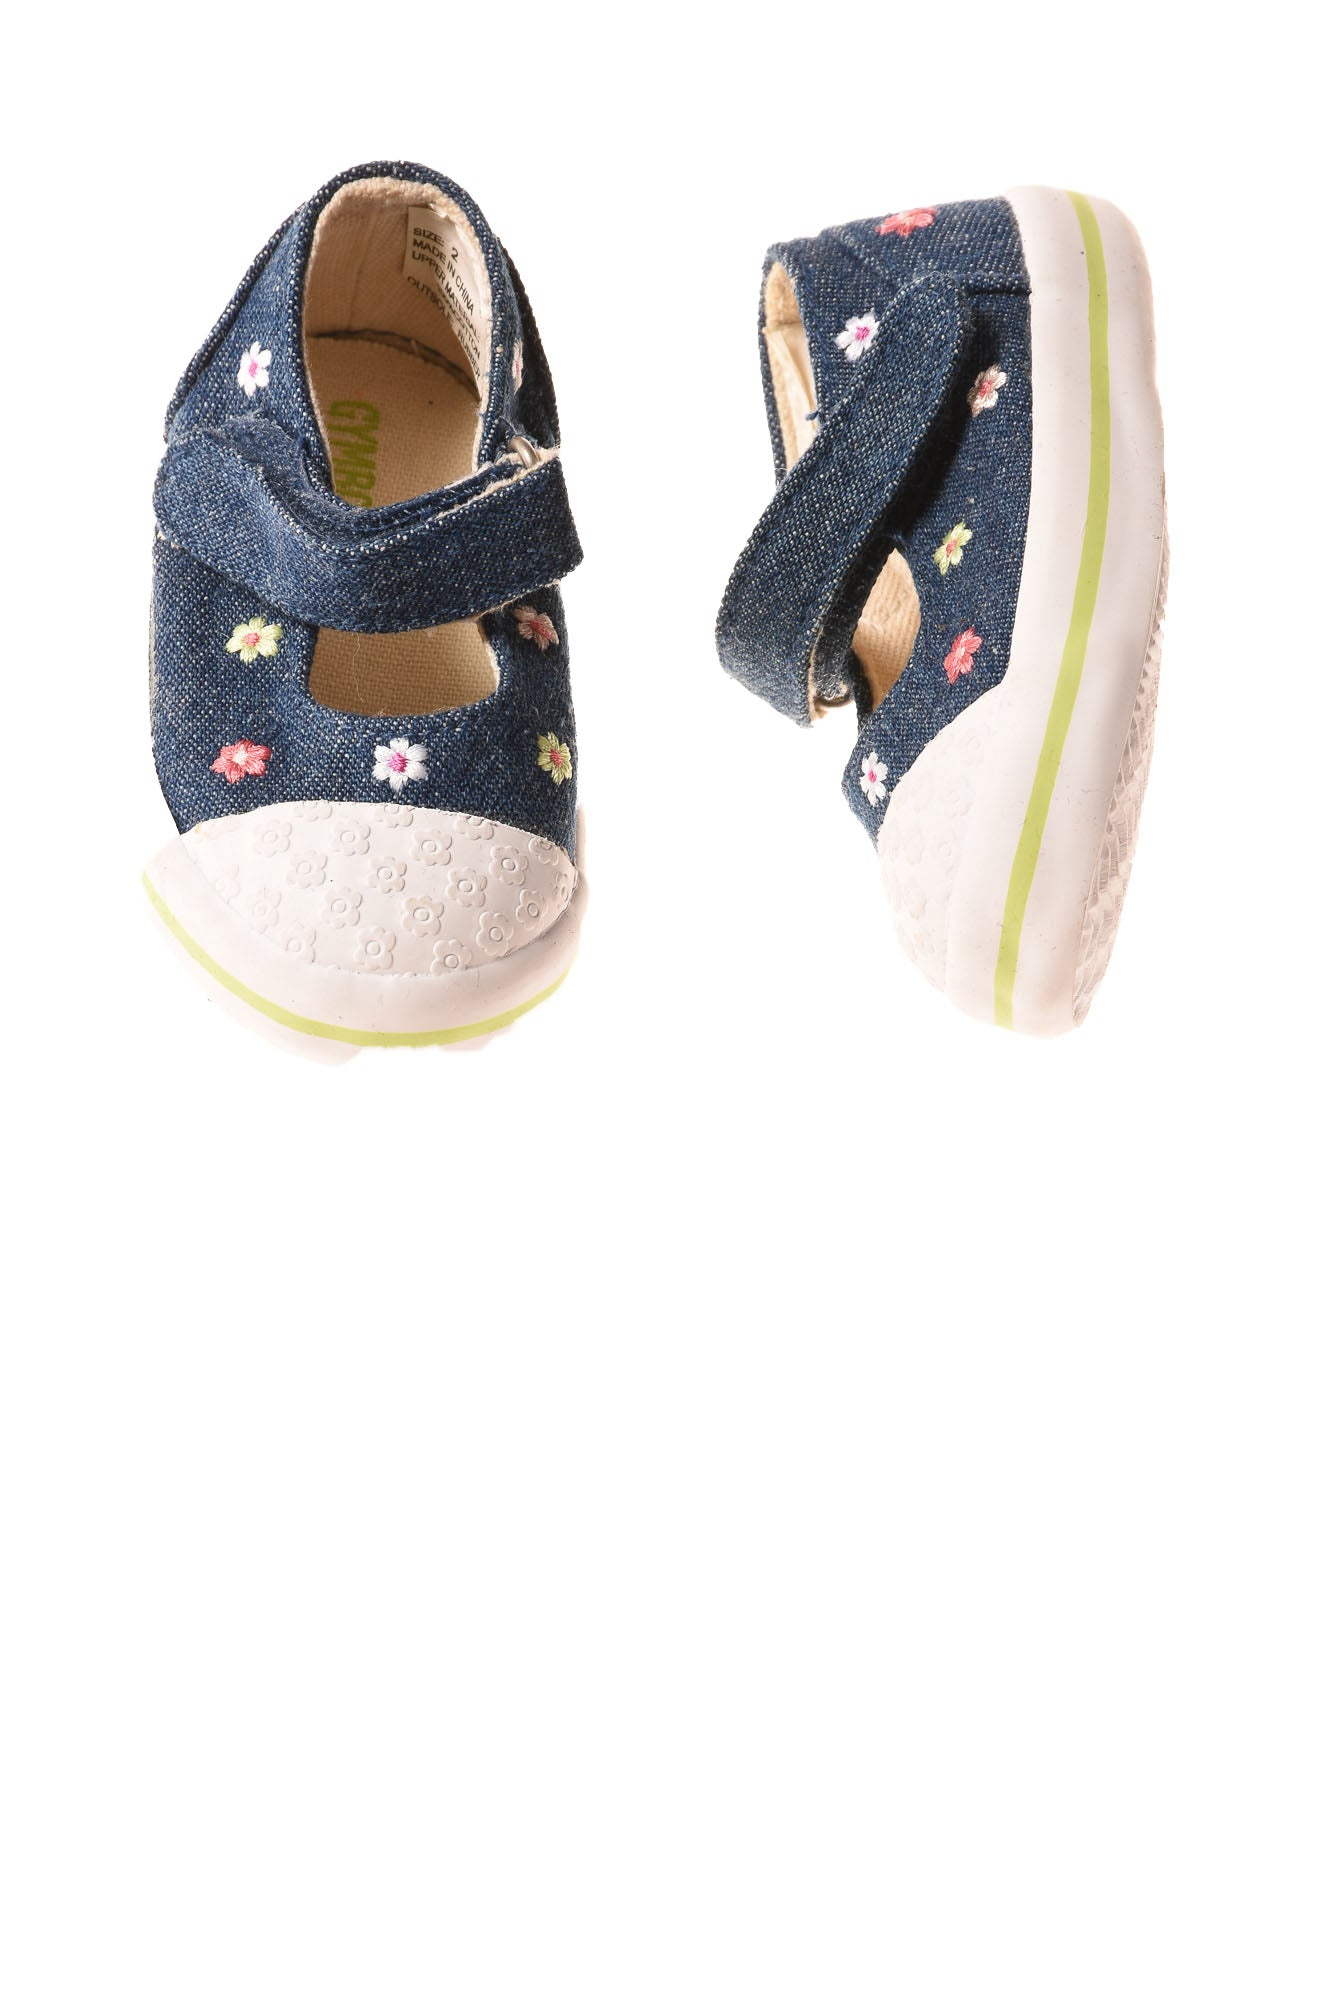 520180d444e2 USED Gymboree Baby Girl s Shoes 2 Blue   Floral - Village Discount ...